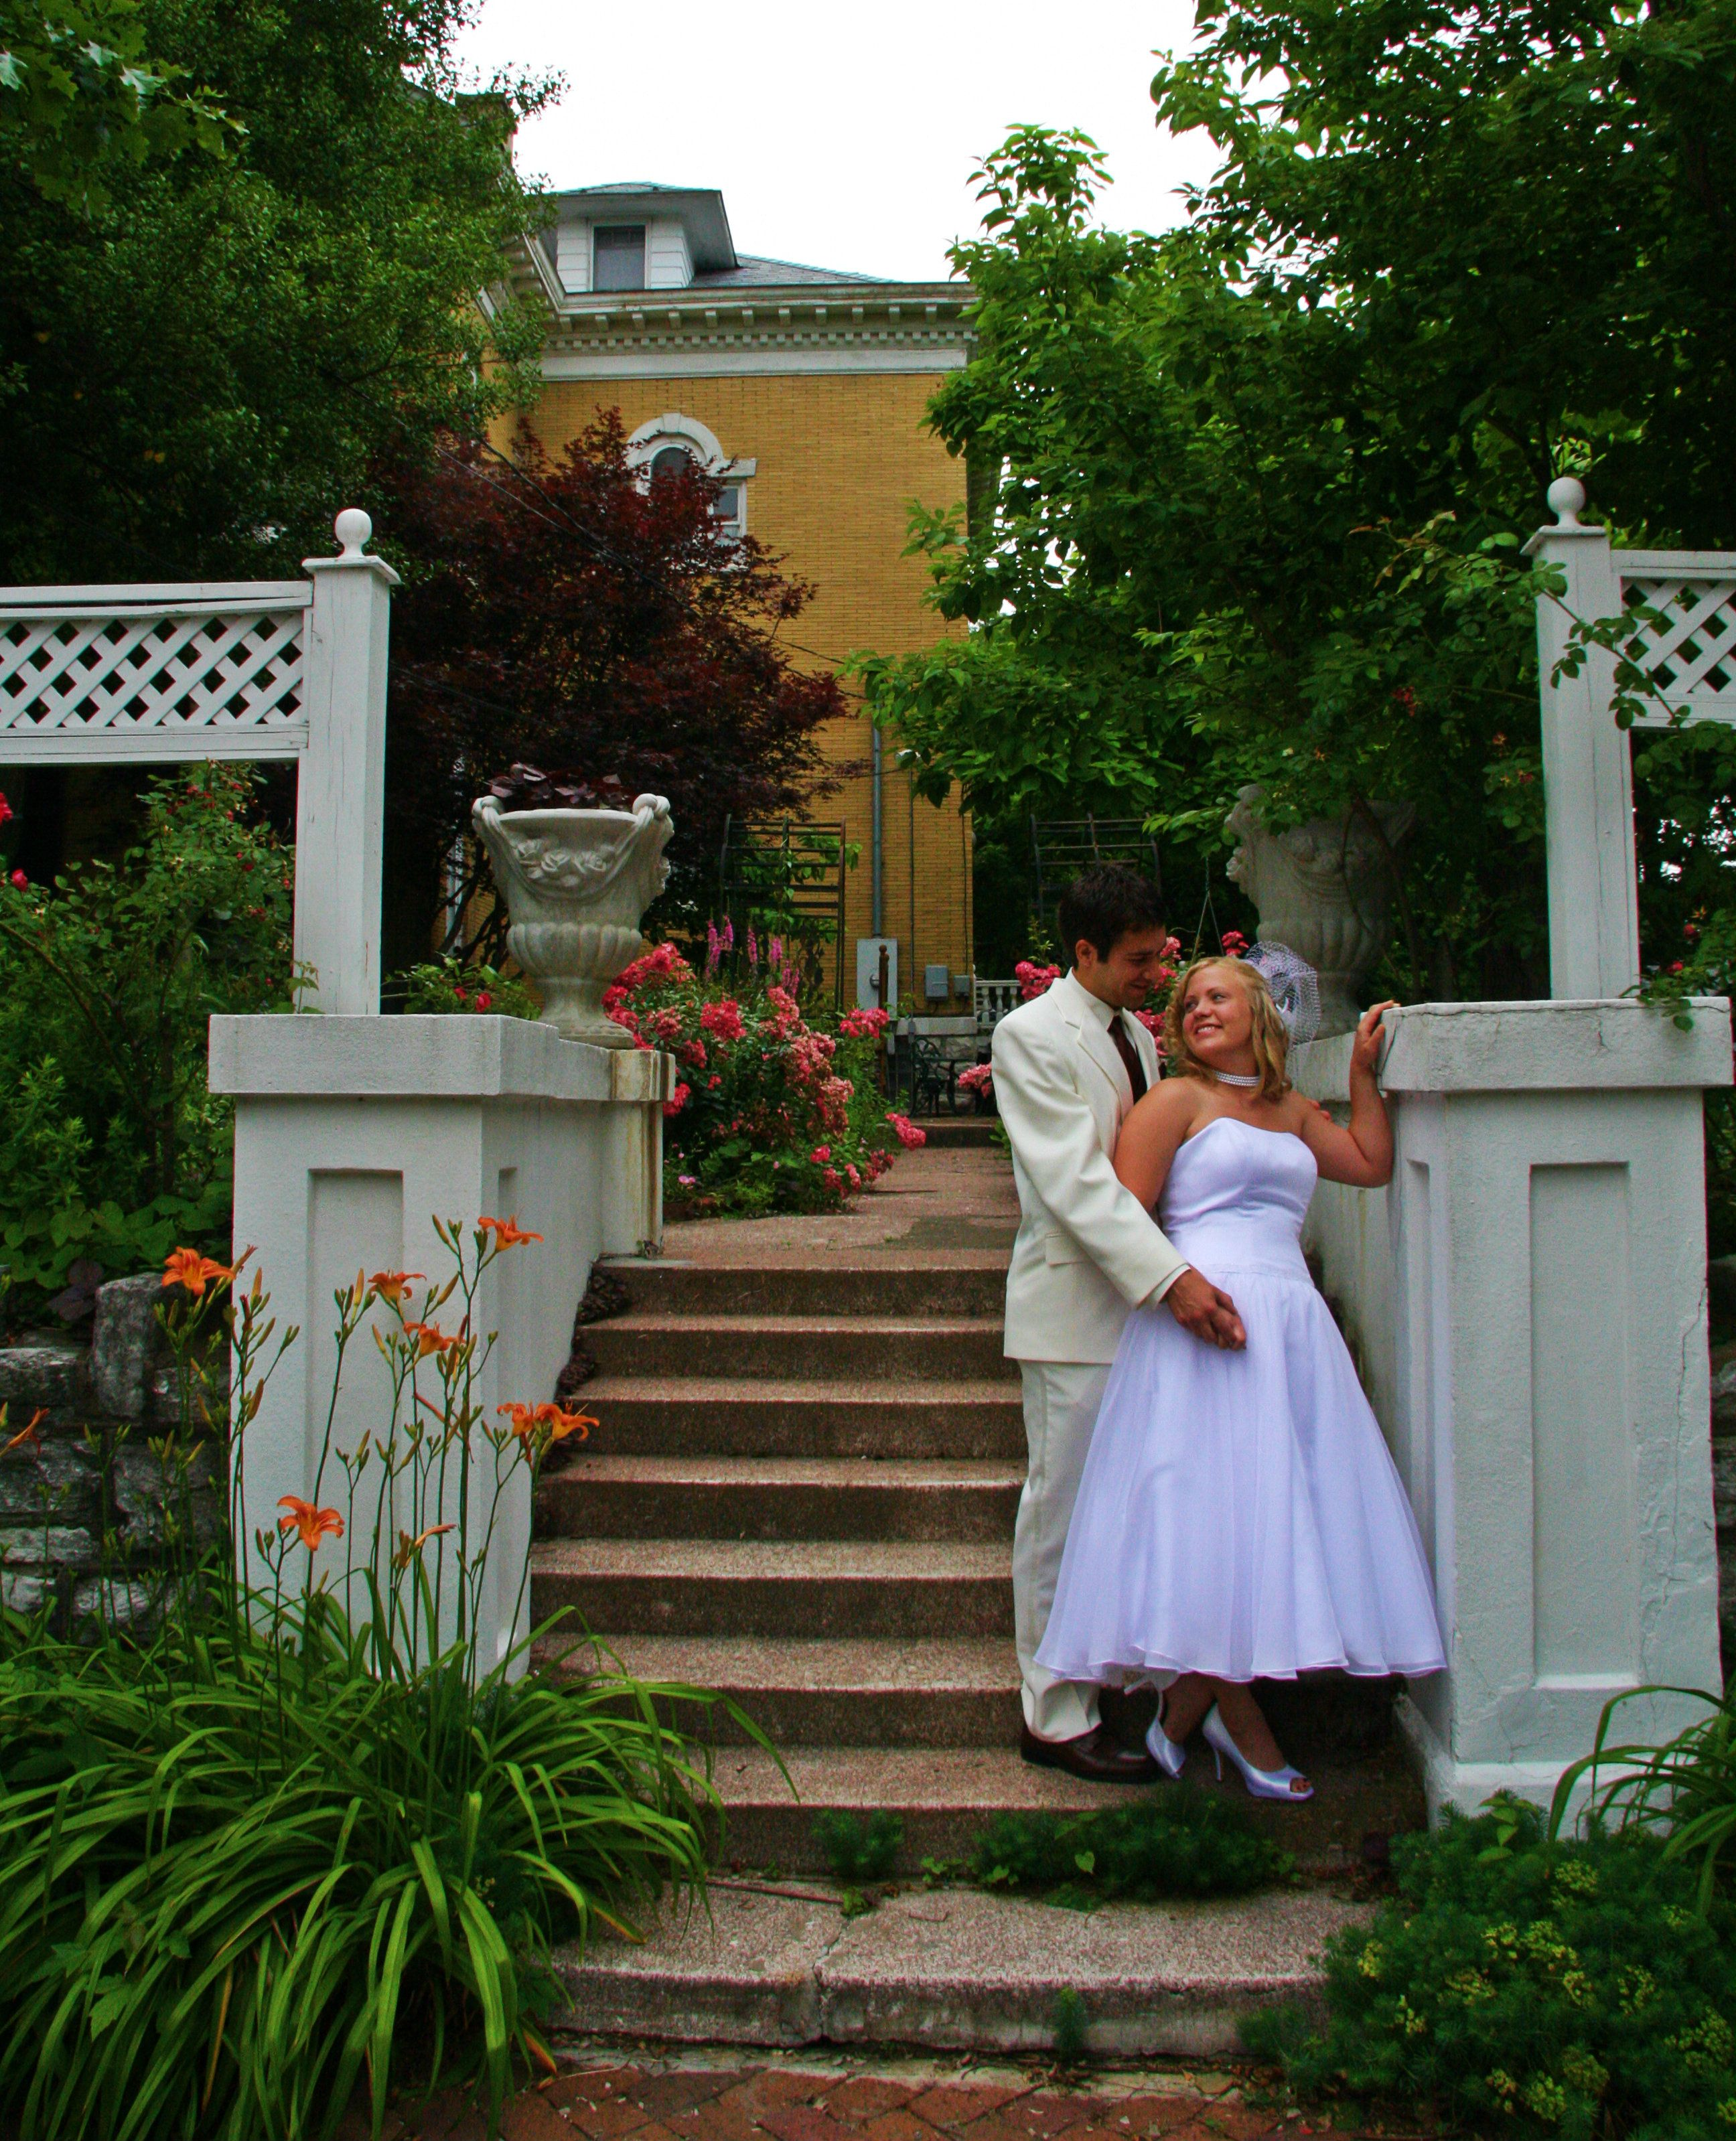 The Beall Mansion #gardens Are The Perfect #venue For An